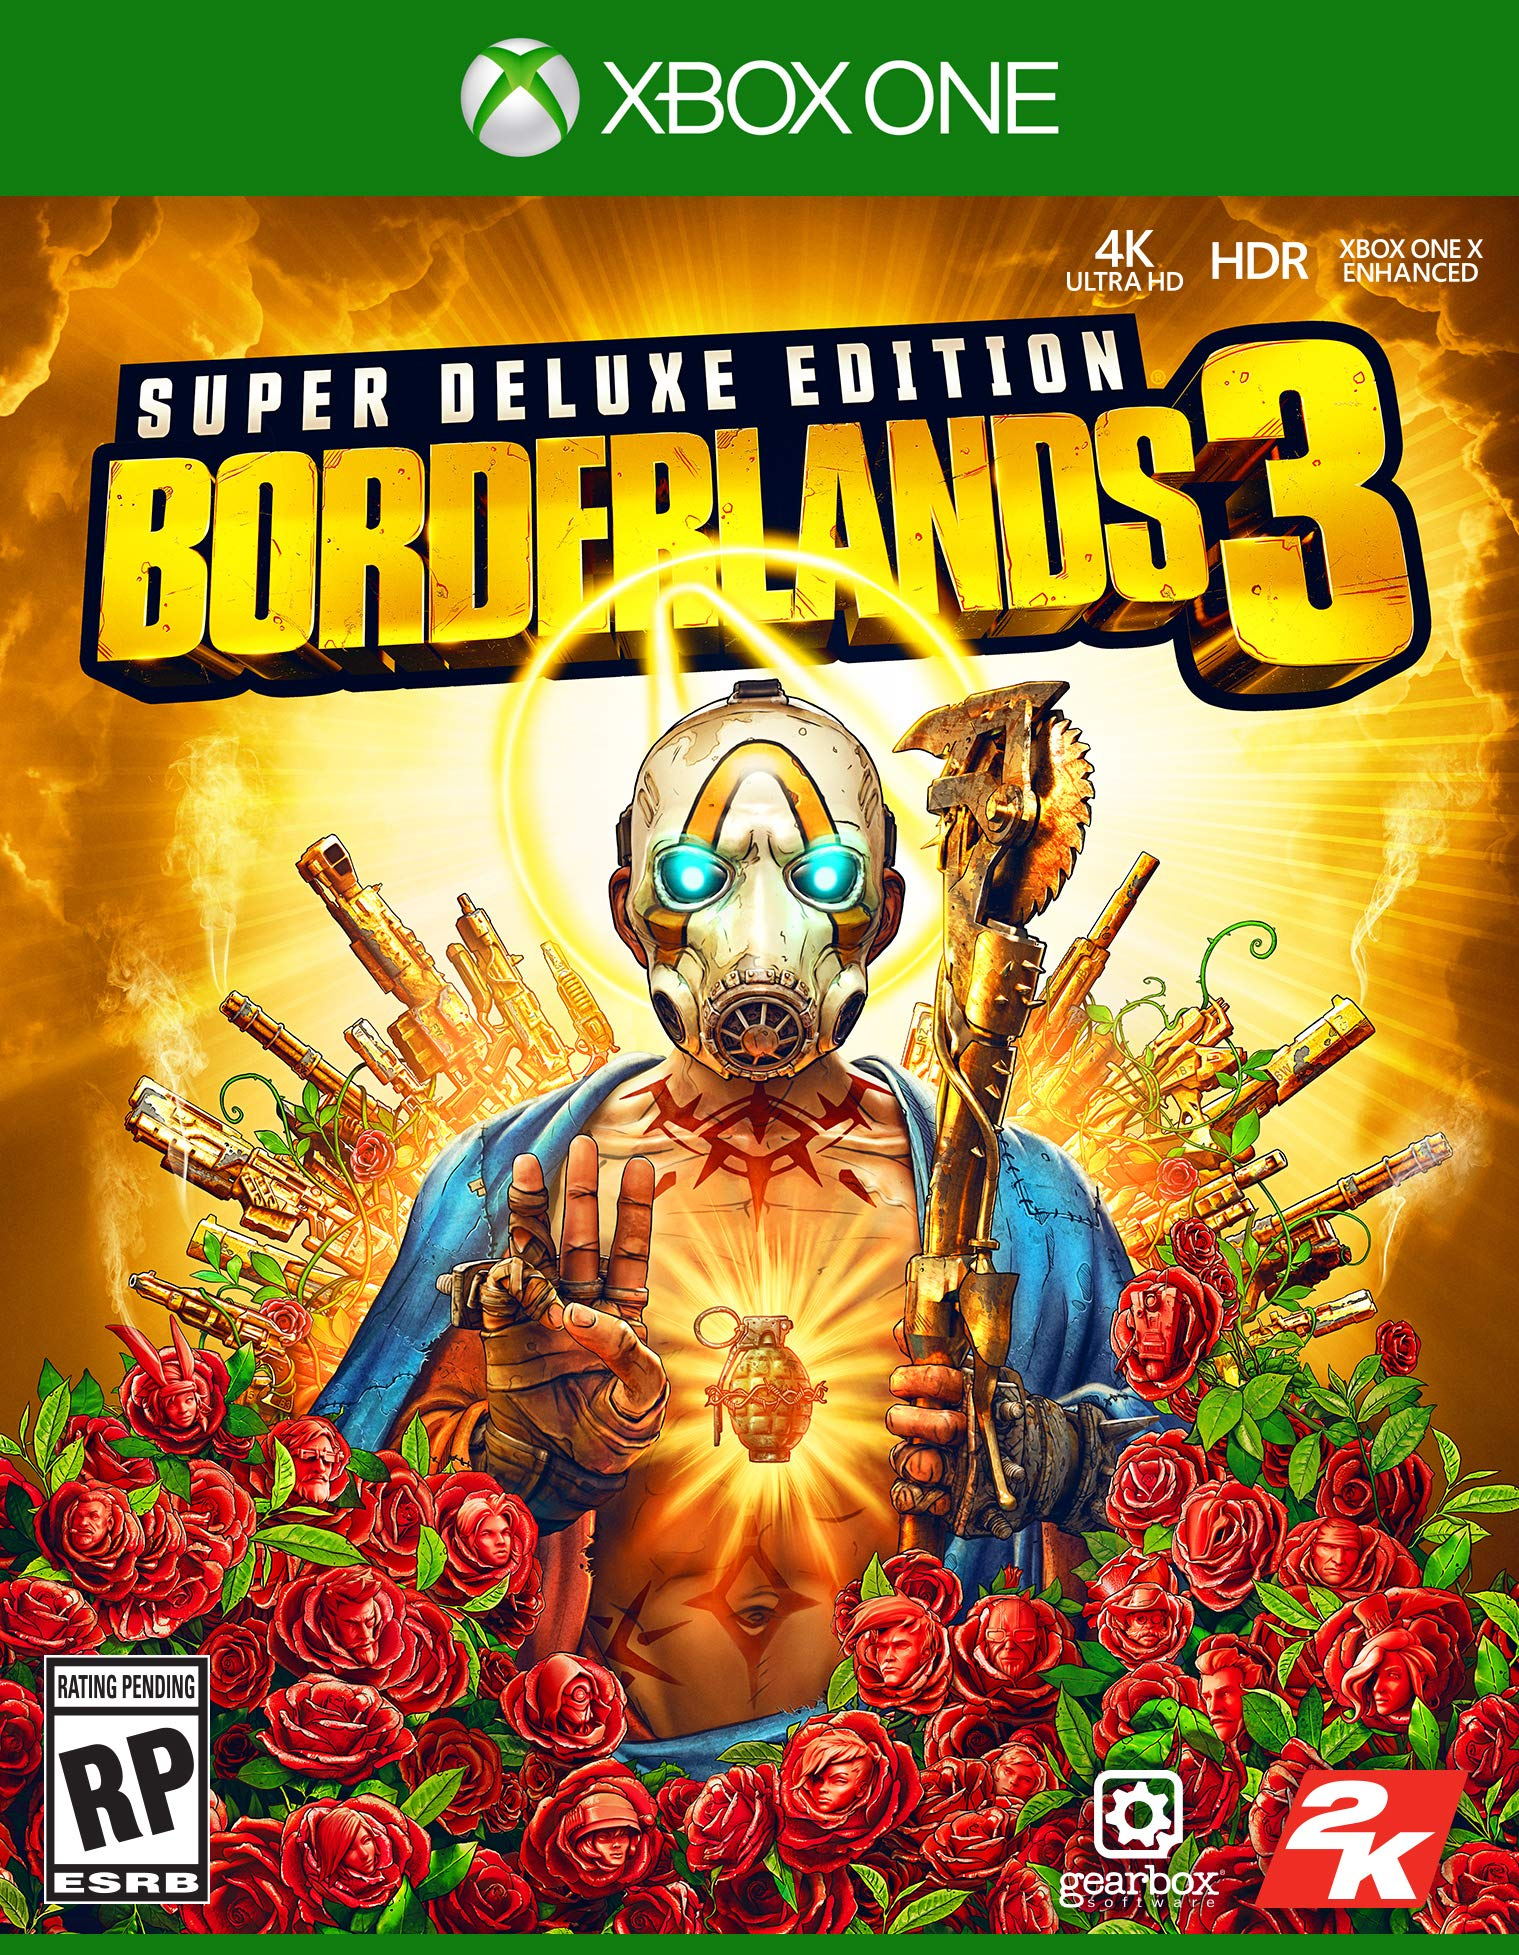 Borderlands 3 Super Deluxe Edition - Xbox One by 2K (Image #1)